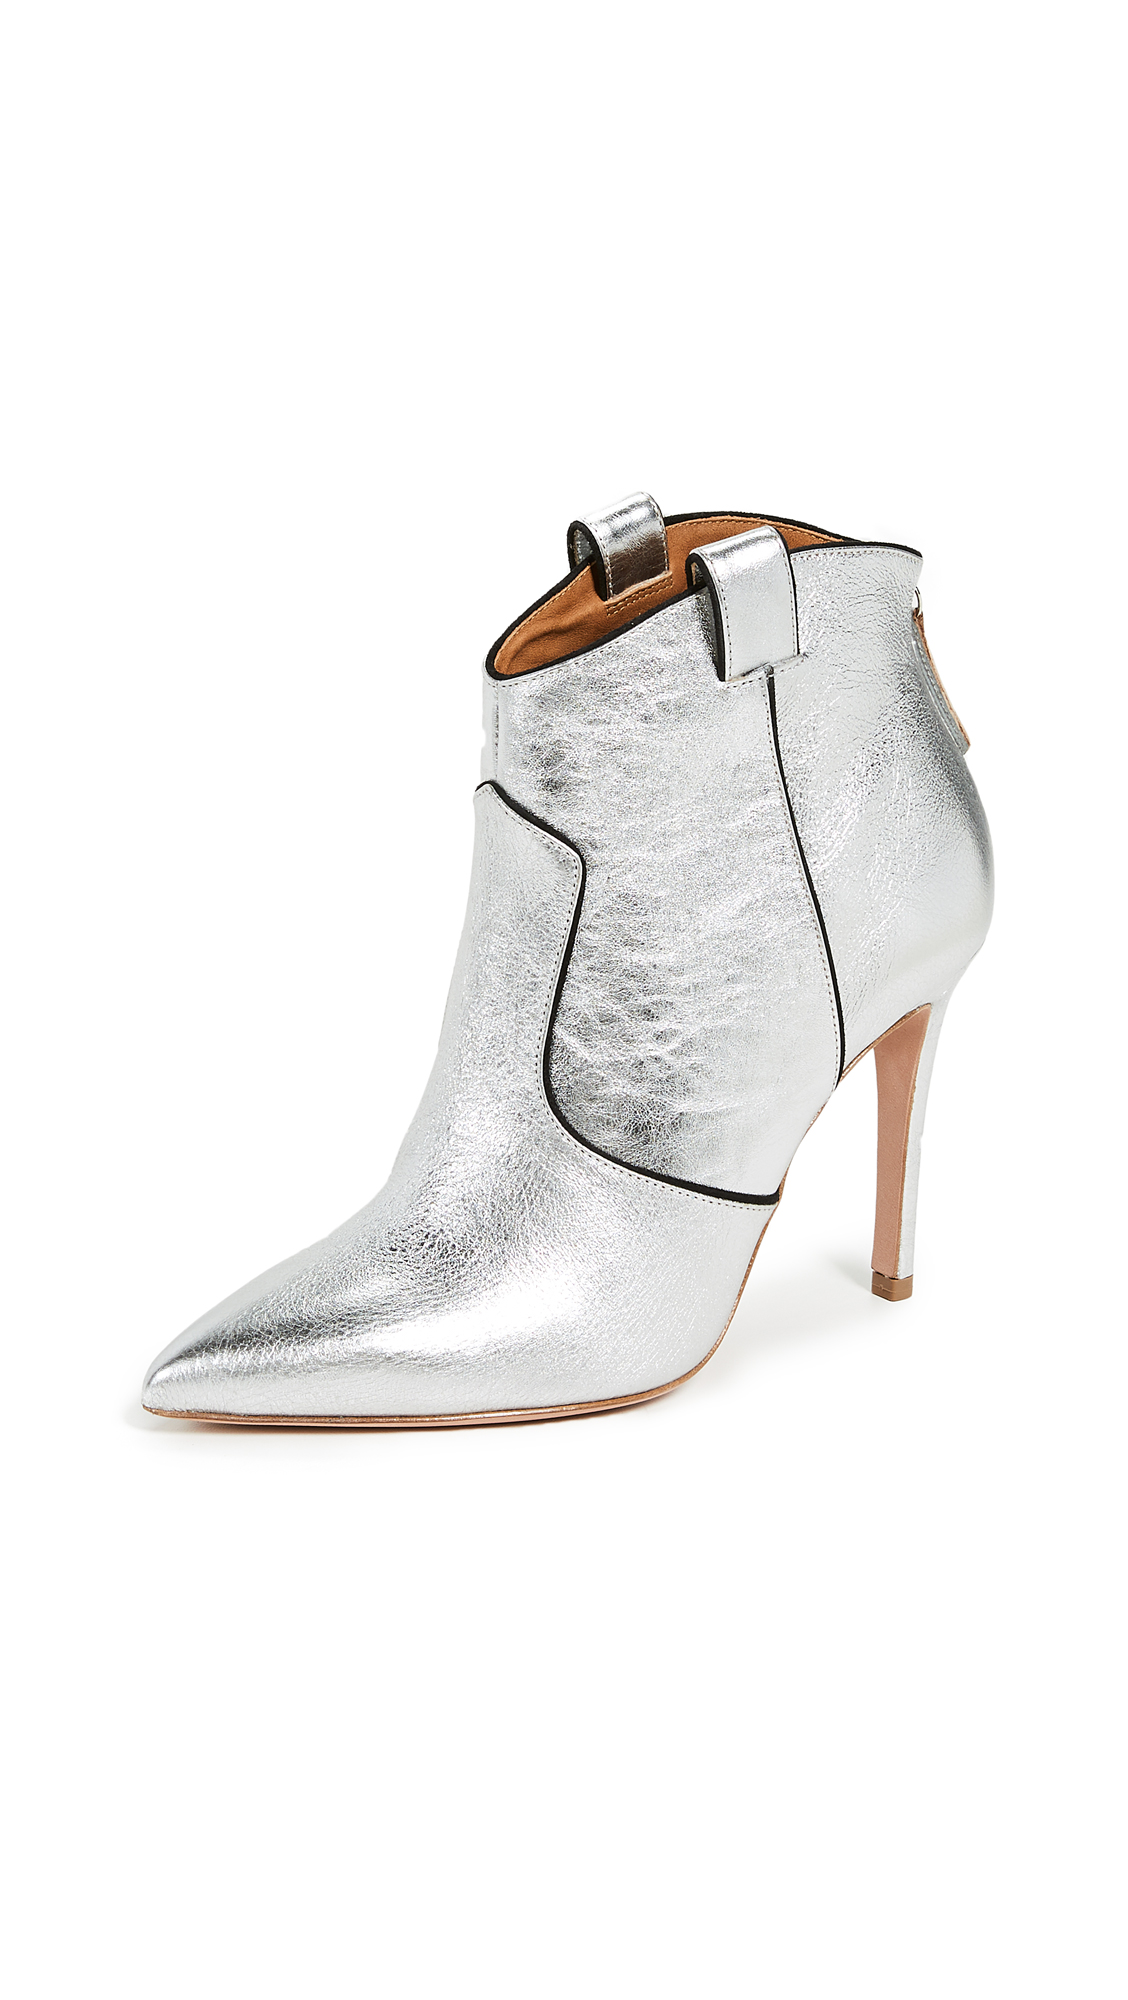 Veronica Beard Loretta Booties - Silver/Black